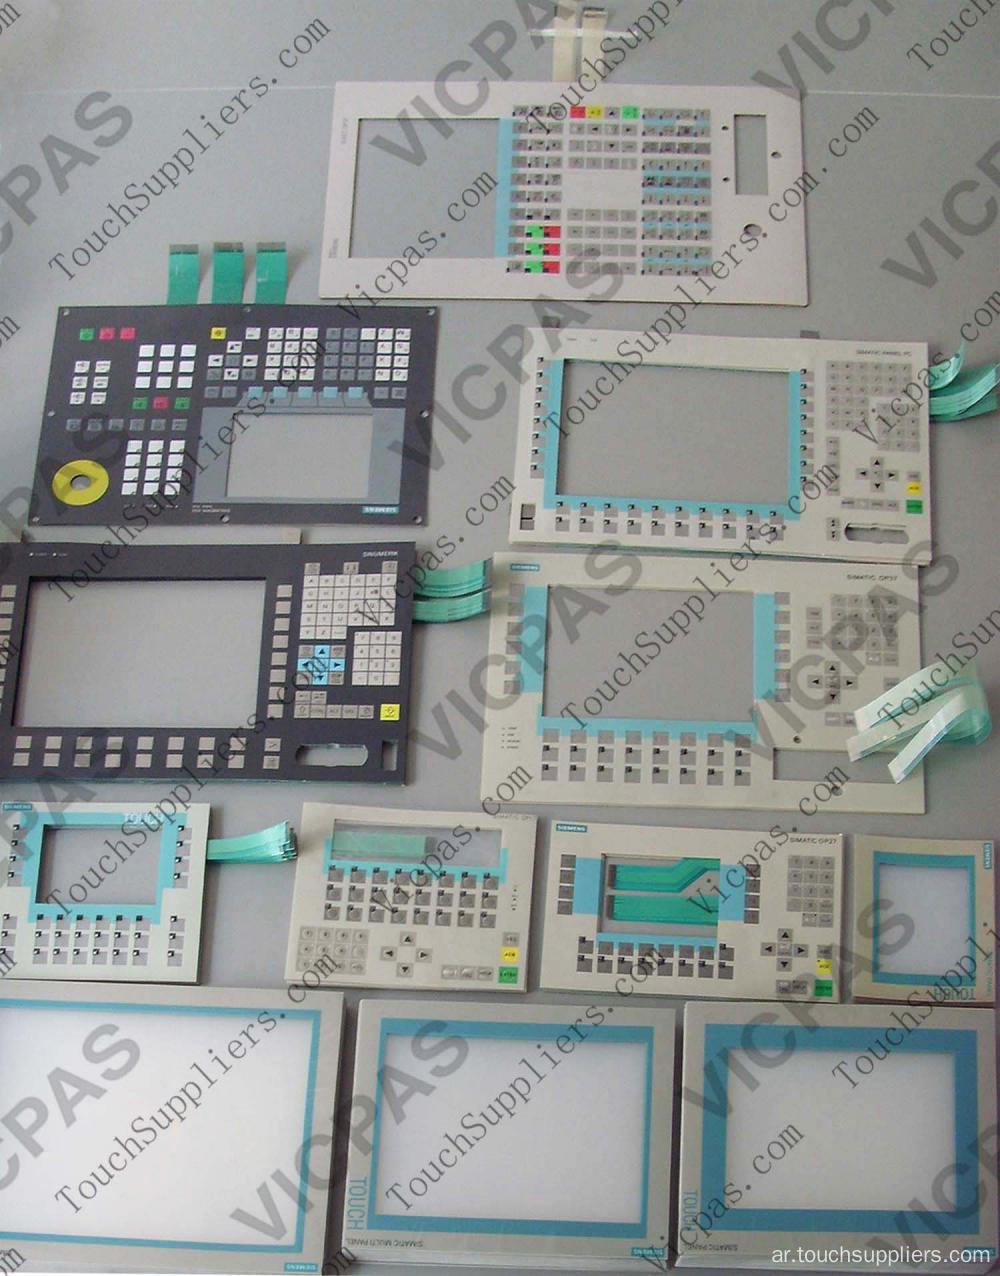 6AV6644-0BA01-2AX1 MP 377 12 KEY keyboard keyboard / keyboard keyboard 6AV6644-0BA01-2AX1 MP 377 12 KEY